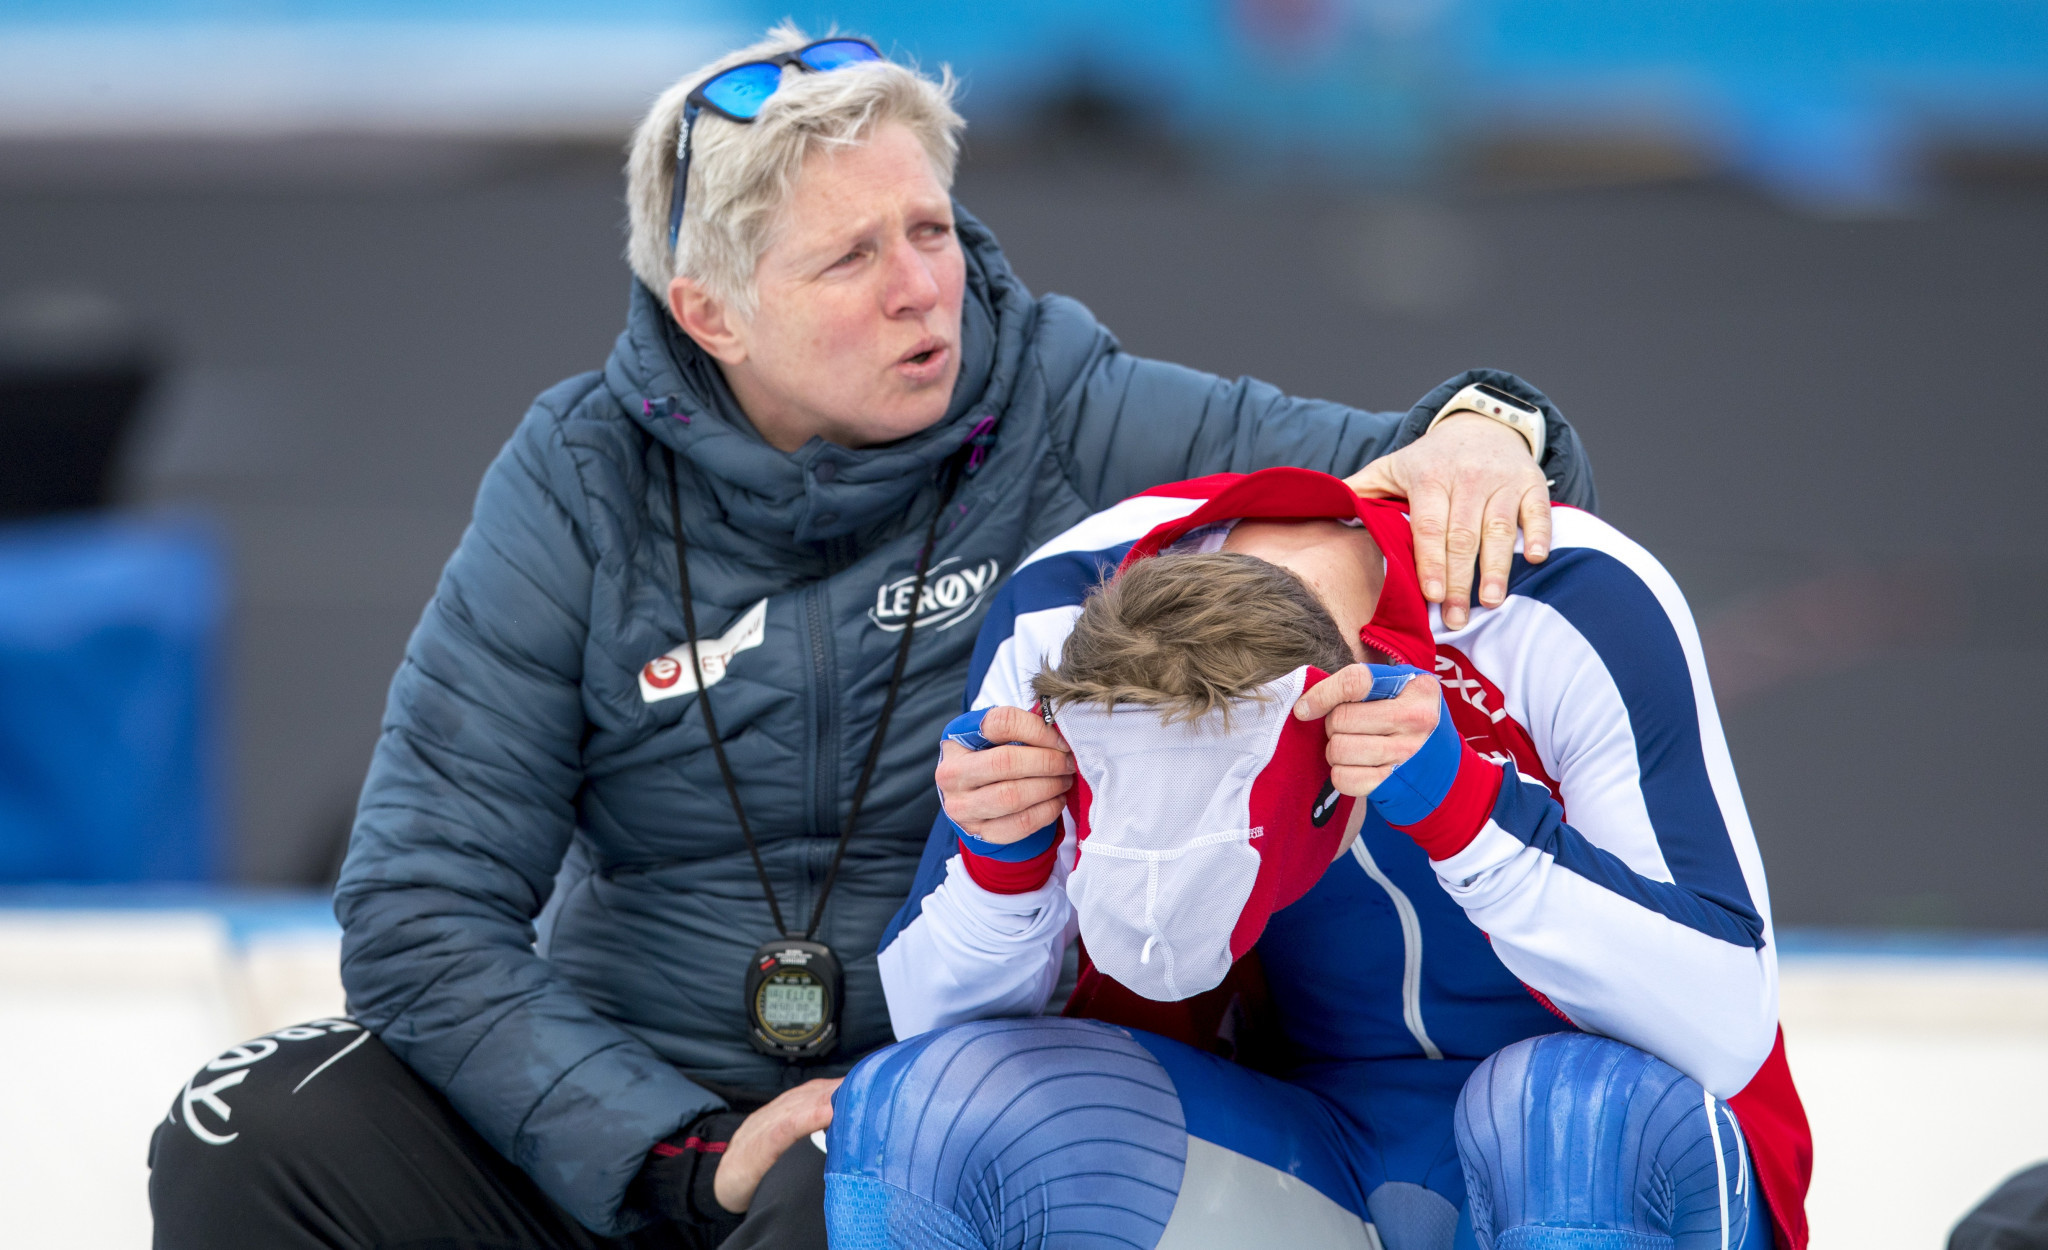 Sverre Lunde Pedersen is consoled after his fall had cost him the opportunity of becoming first Norwegian to win the World Allround Speed Skating champion for 24 years ©Getty Images